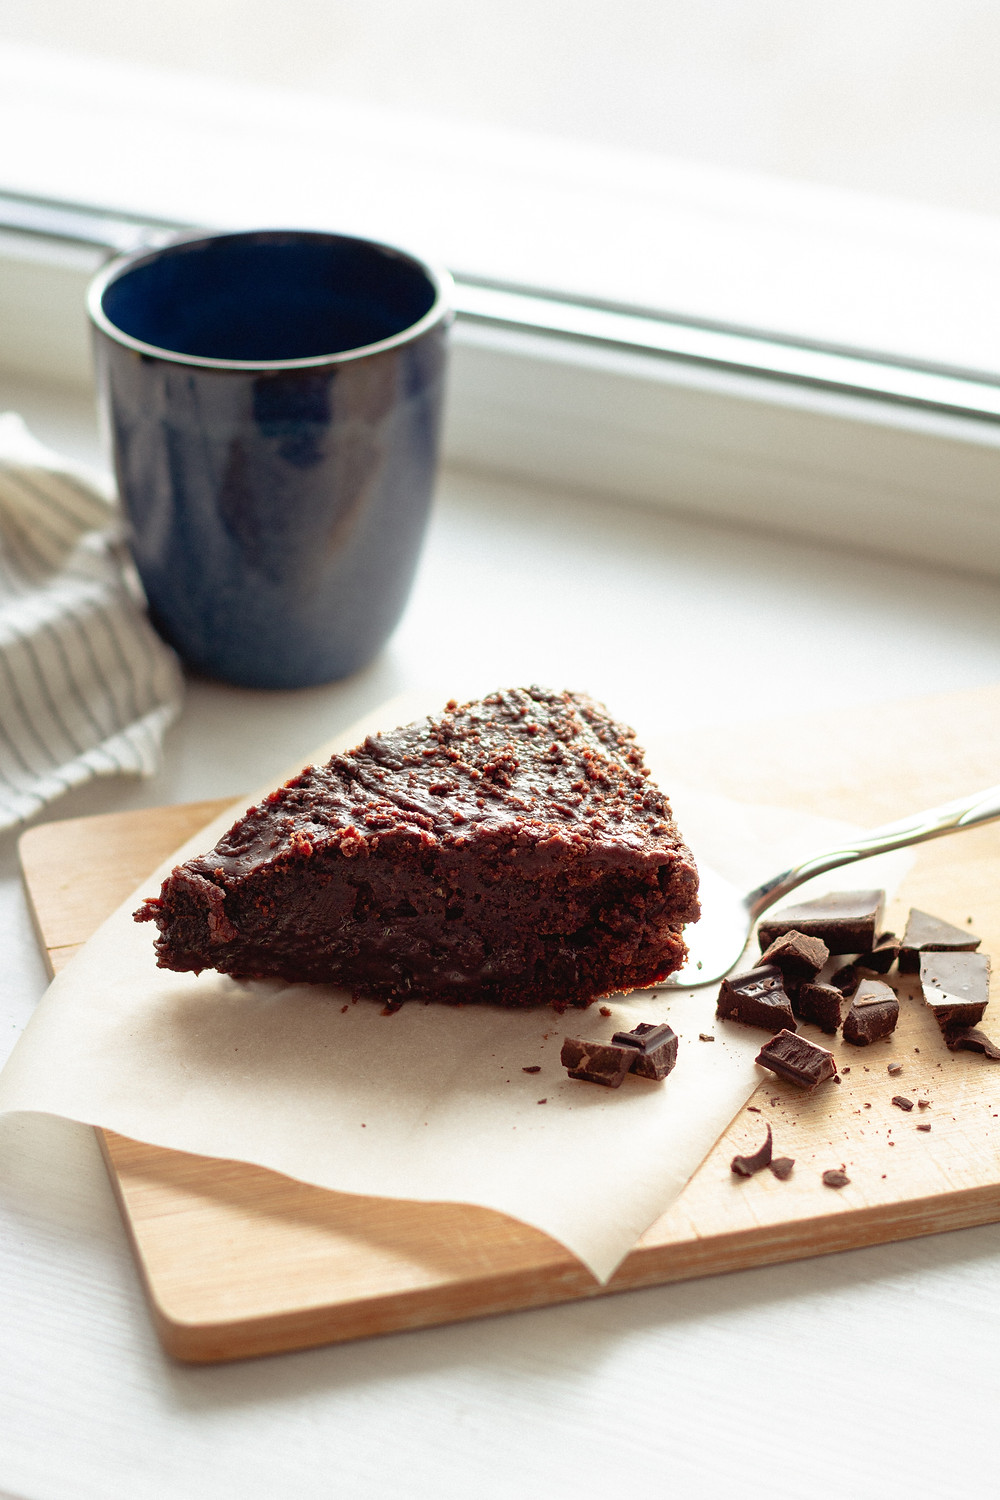 Cup of coffee and piece of chocolate cake